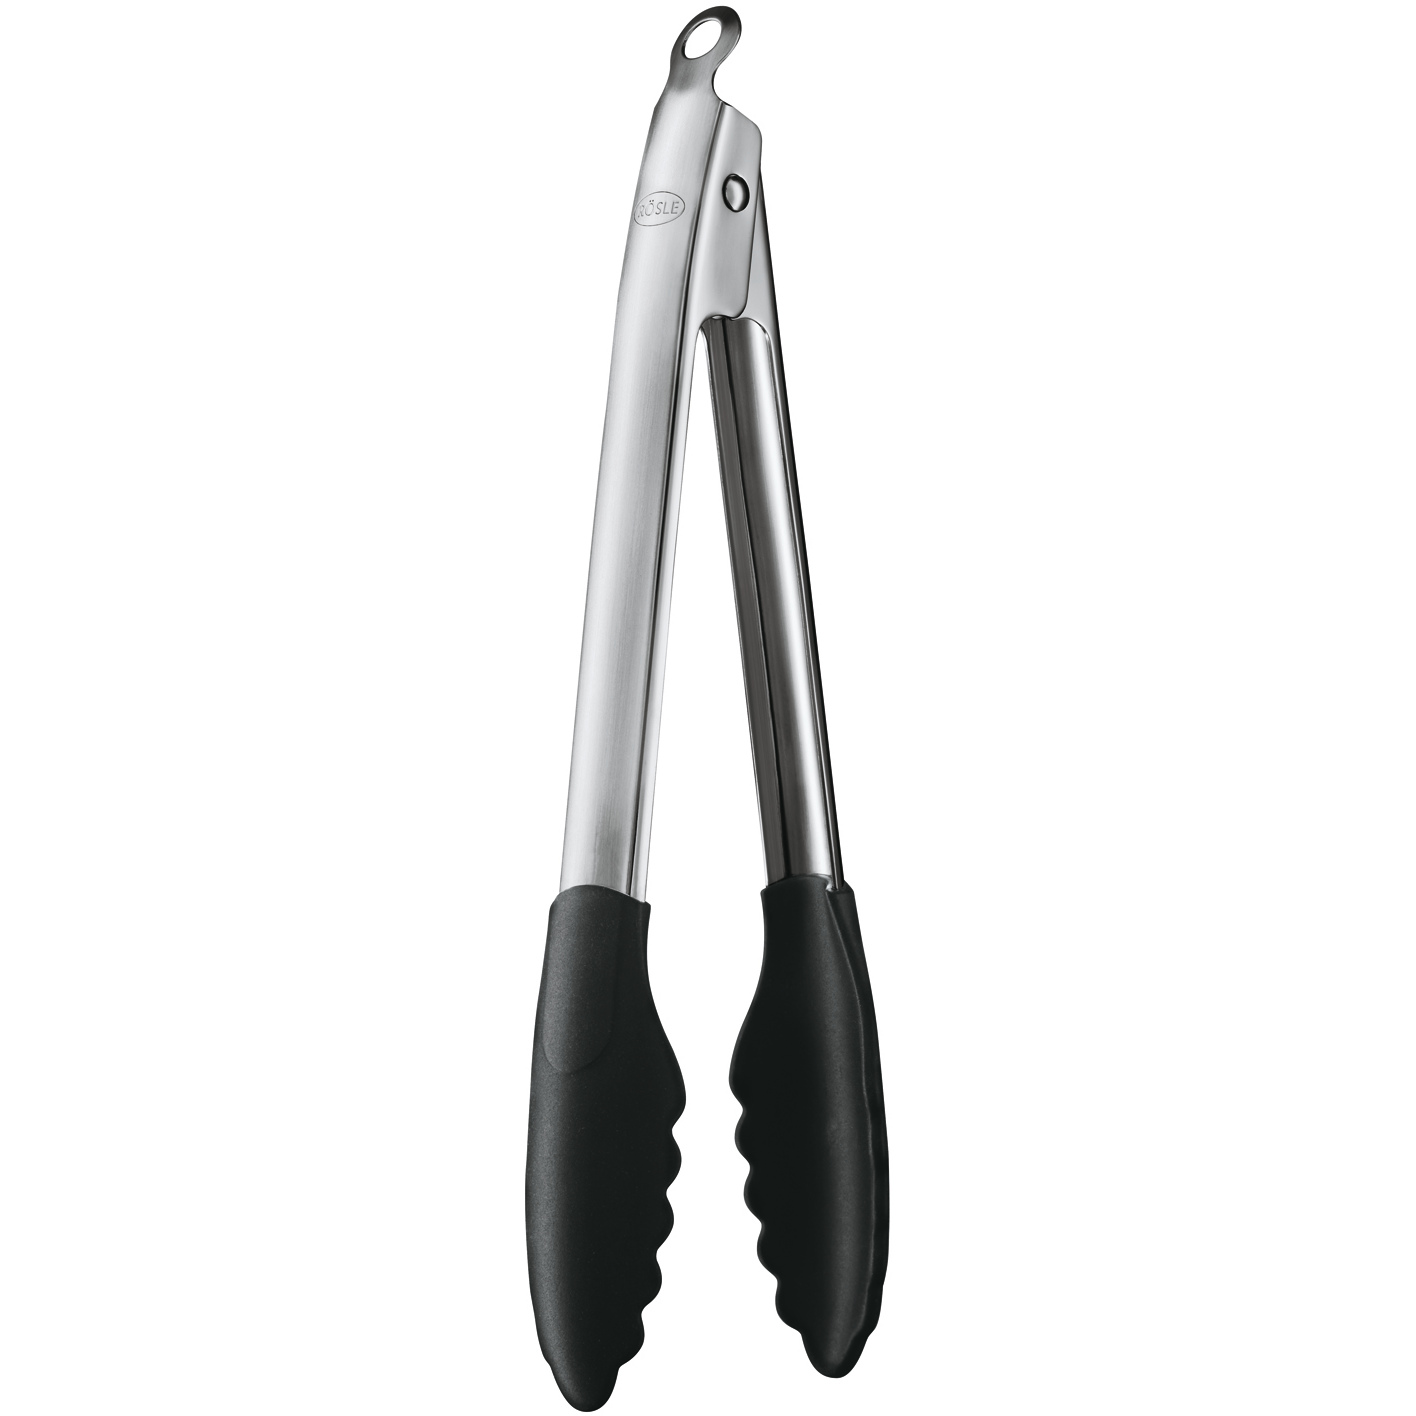 Rosle Silicone 9 Inch Locking Tongs